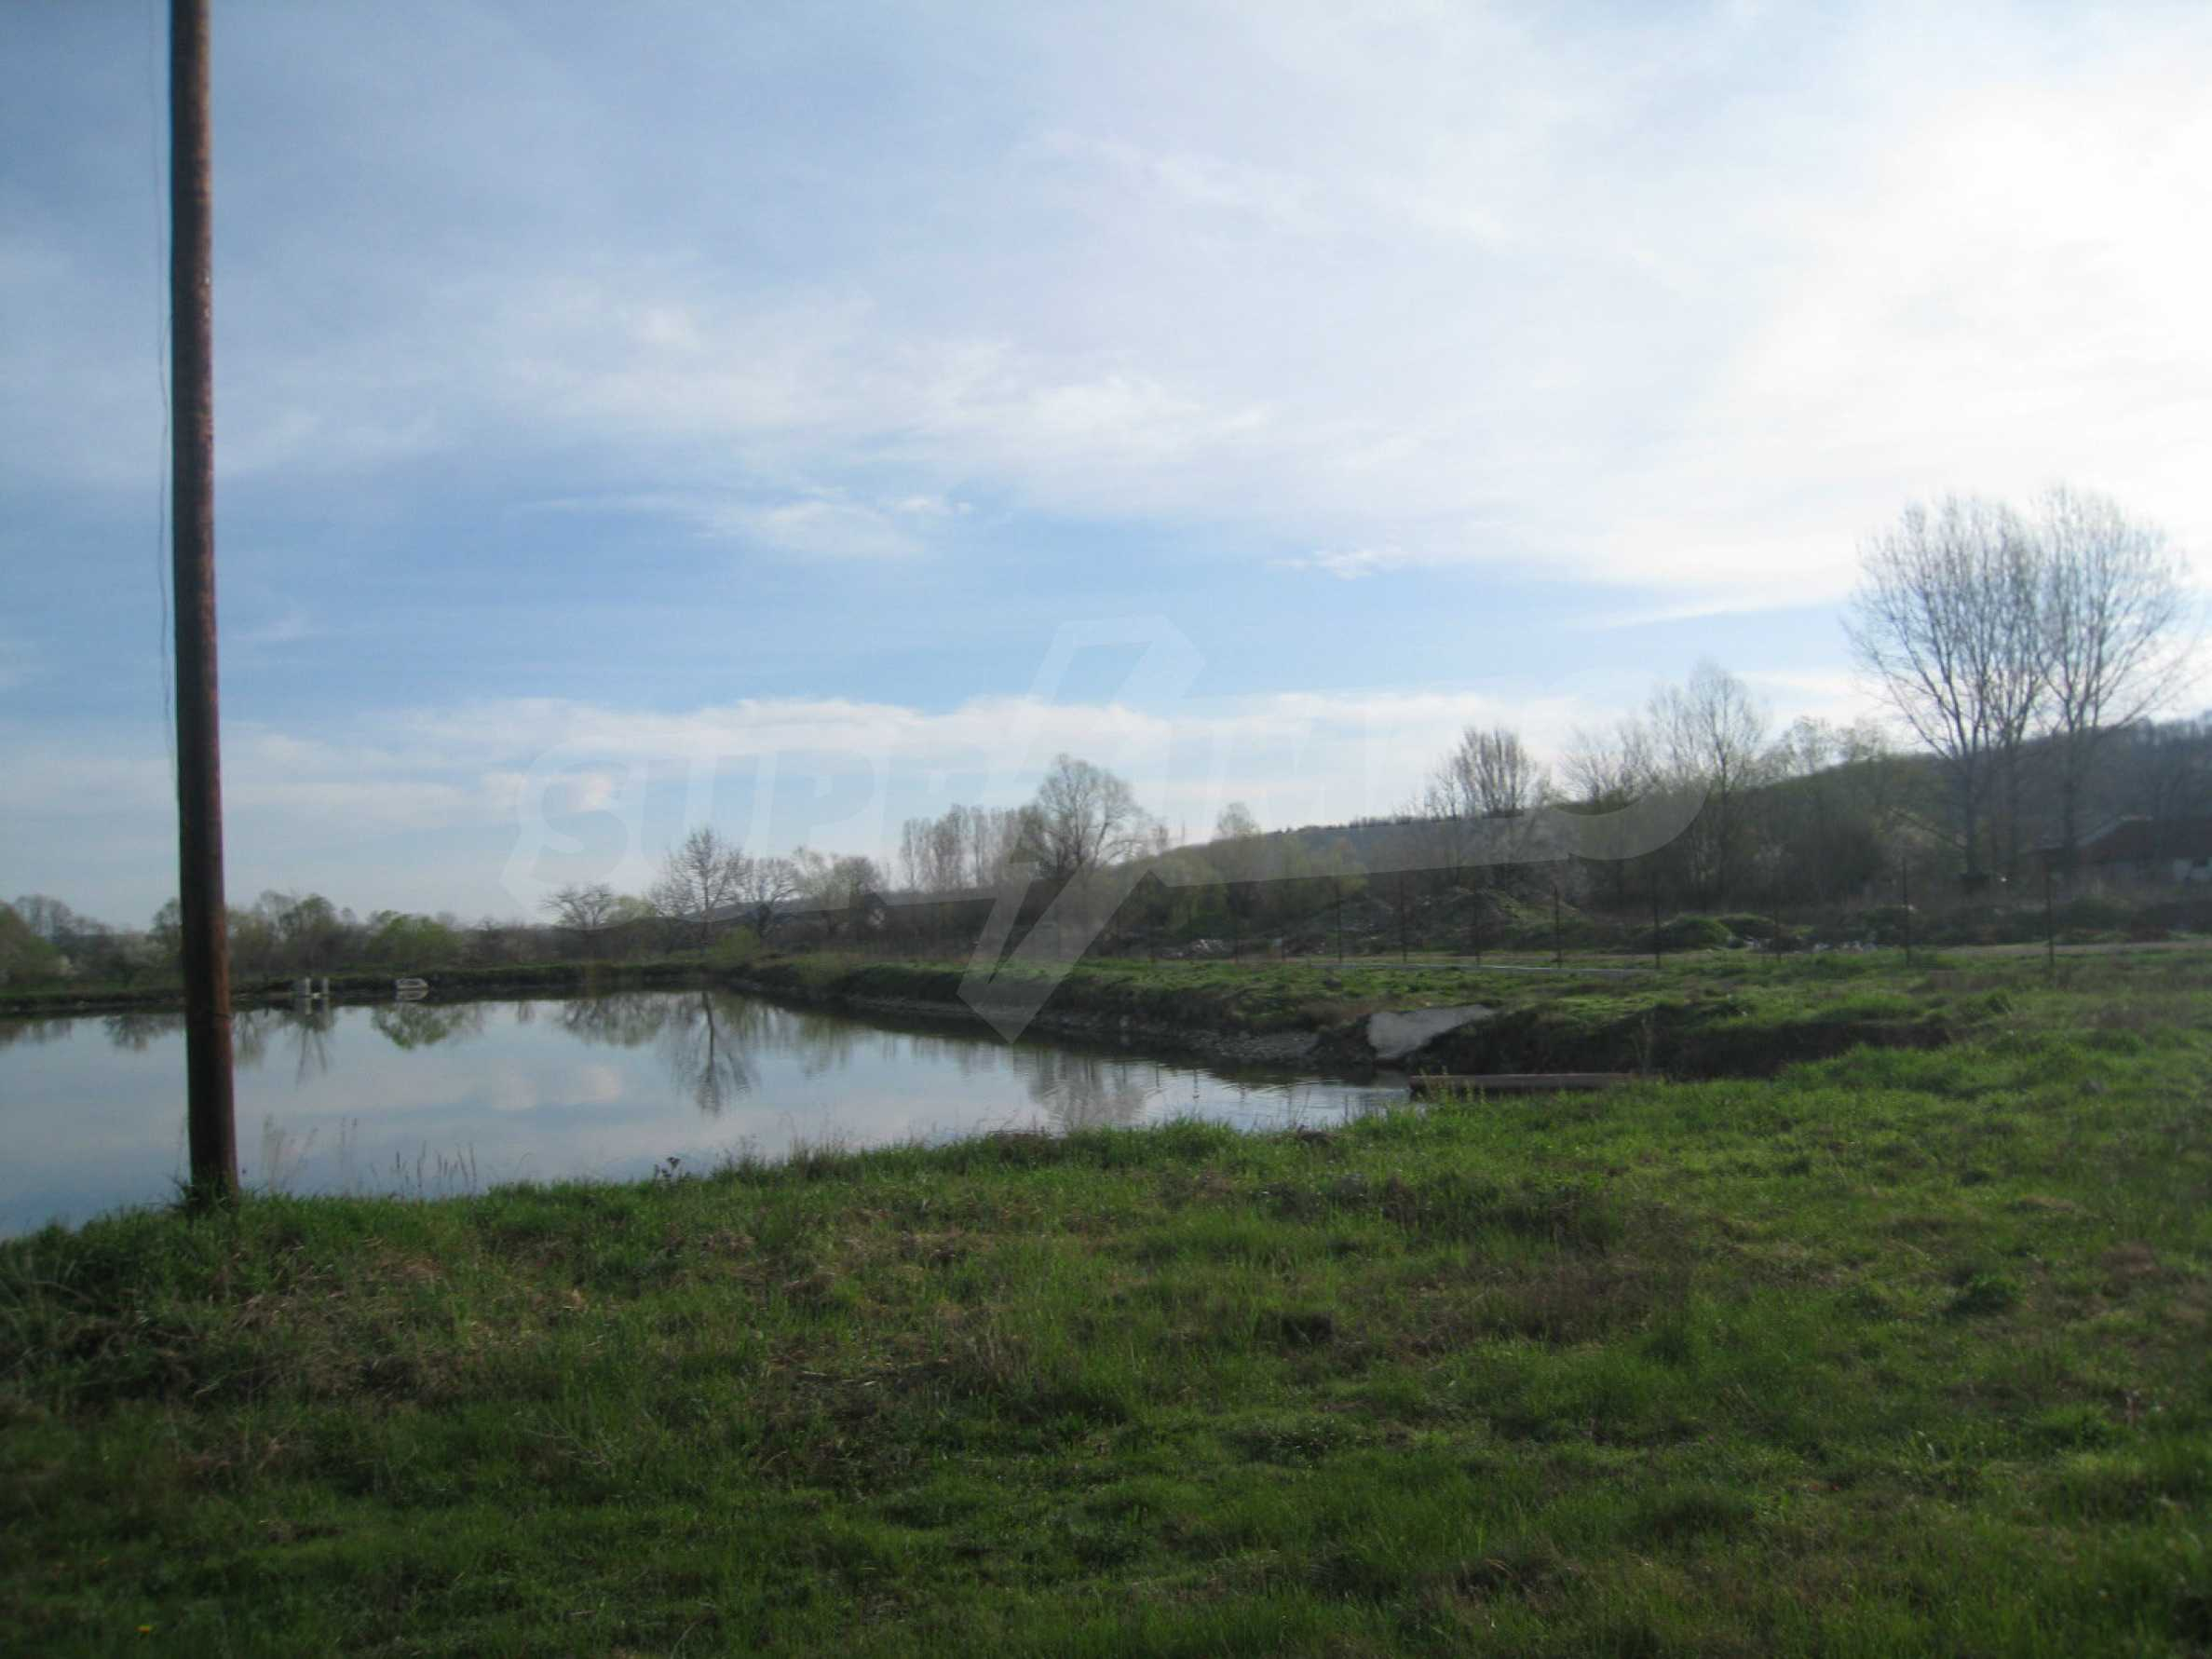 Fishpond, warehouses, residential areas and asphalt ground near Montana 21